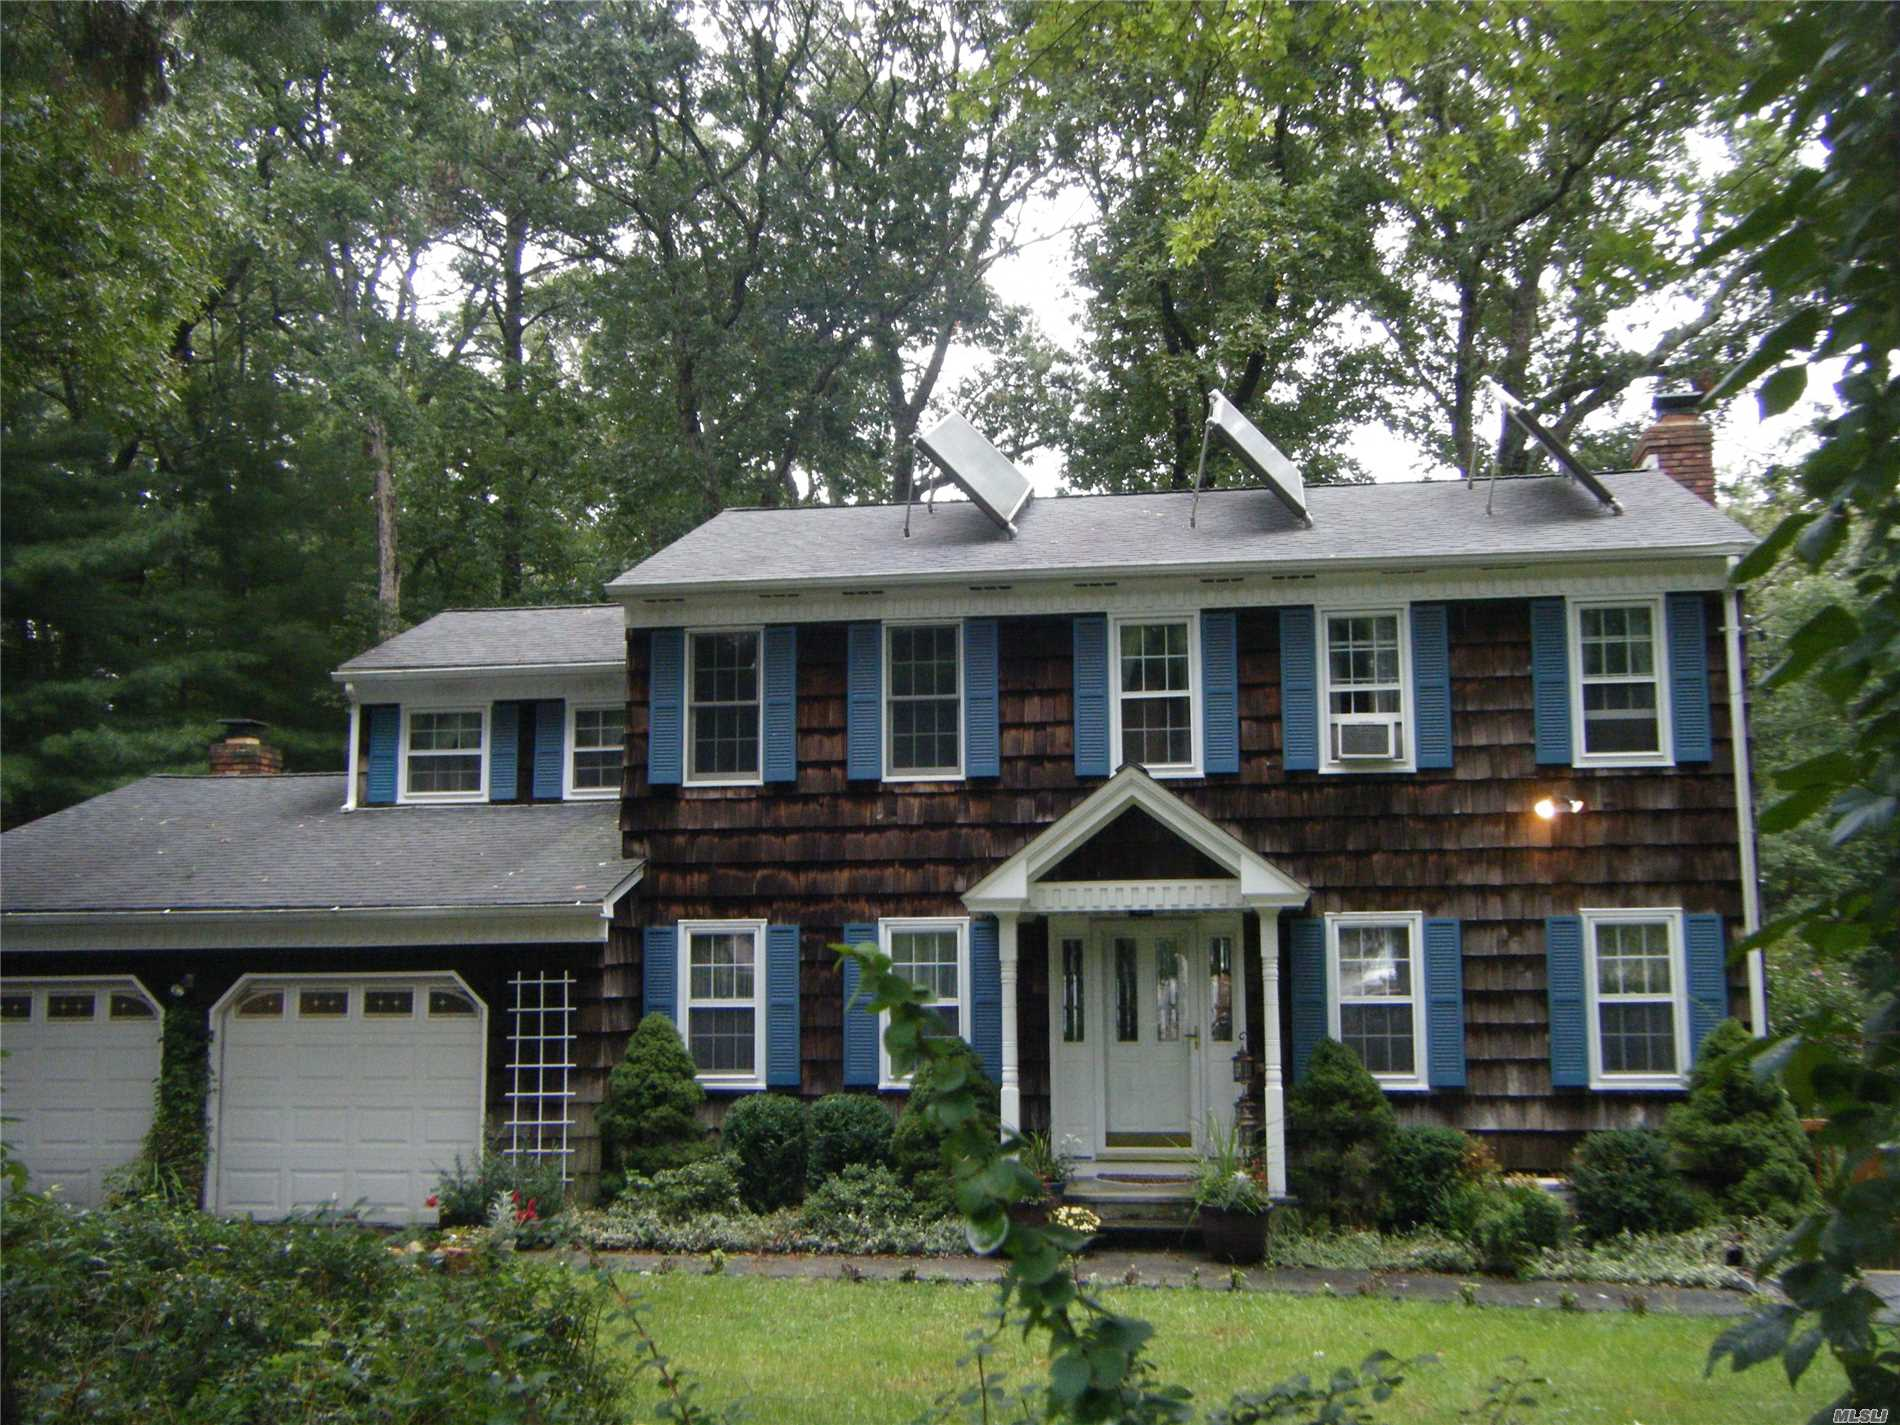 Spacious Colonial In The Midst Of Farms & Wineries. Large Custom Kit.W/Cherry Cabinets, Corian & Sliders To Deck & Patio.Din Area/Sunroom, 2 Fpls., 1 Wood & 1 Gas Fpl. In Den. Mast Bth, Wp Tub In Guest Bth., Custom Moldings, All Oak Fls, Hi Hats, Attic Fan, Fin. Bsmt, 2.5 Car Garage, Owner Owned Solar Panels For Hot Water, Lovely Pvt Yard W/In Ground Pool, Igs, Fish Pond W/Waterfall & Ig Elect.Dog Fence.